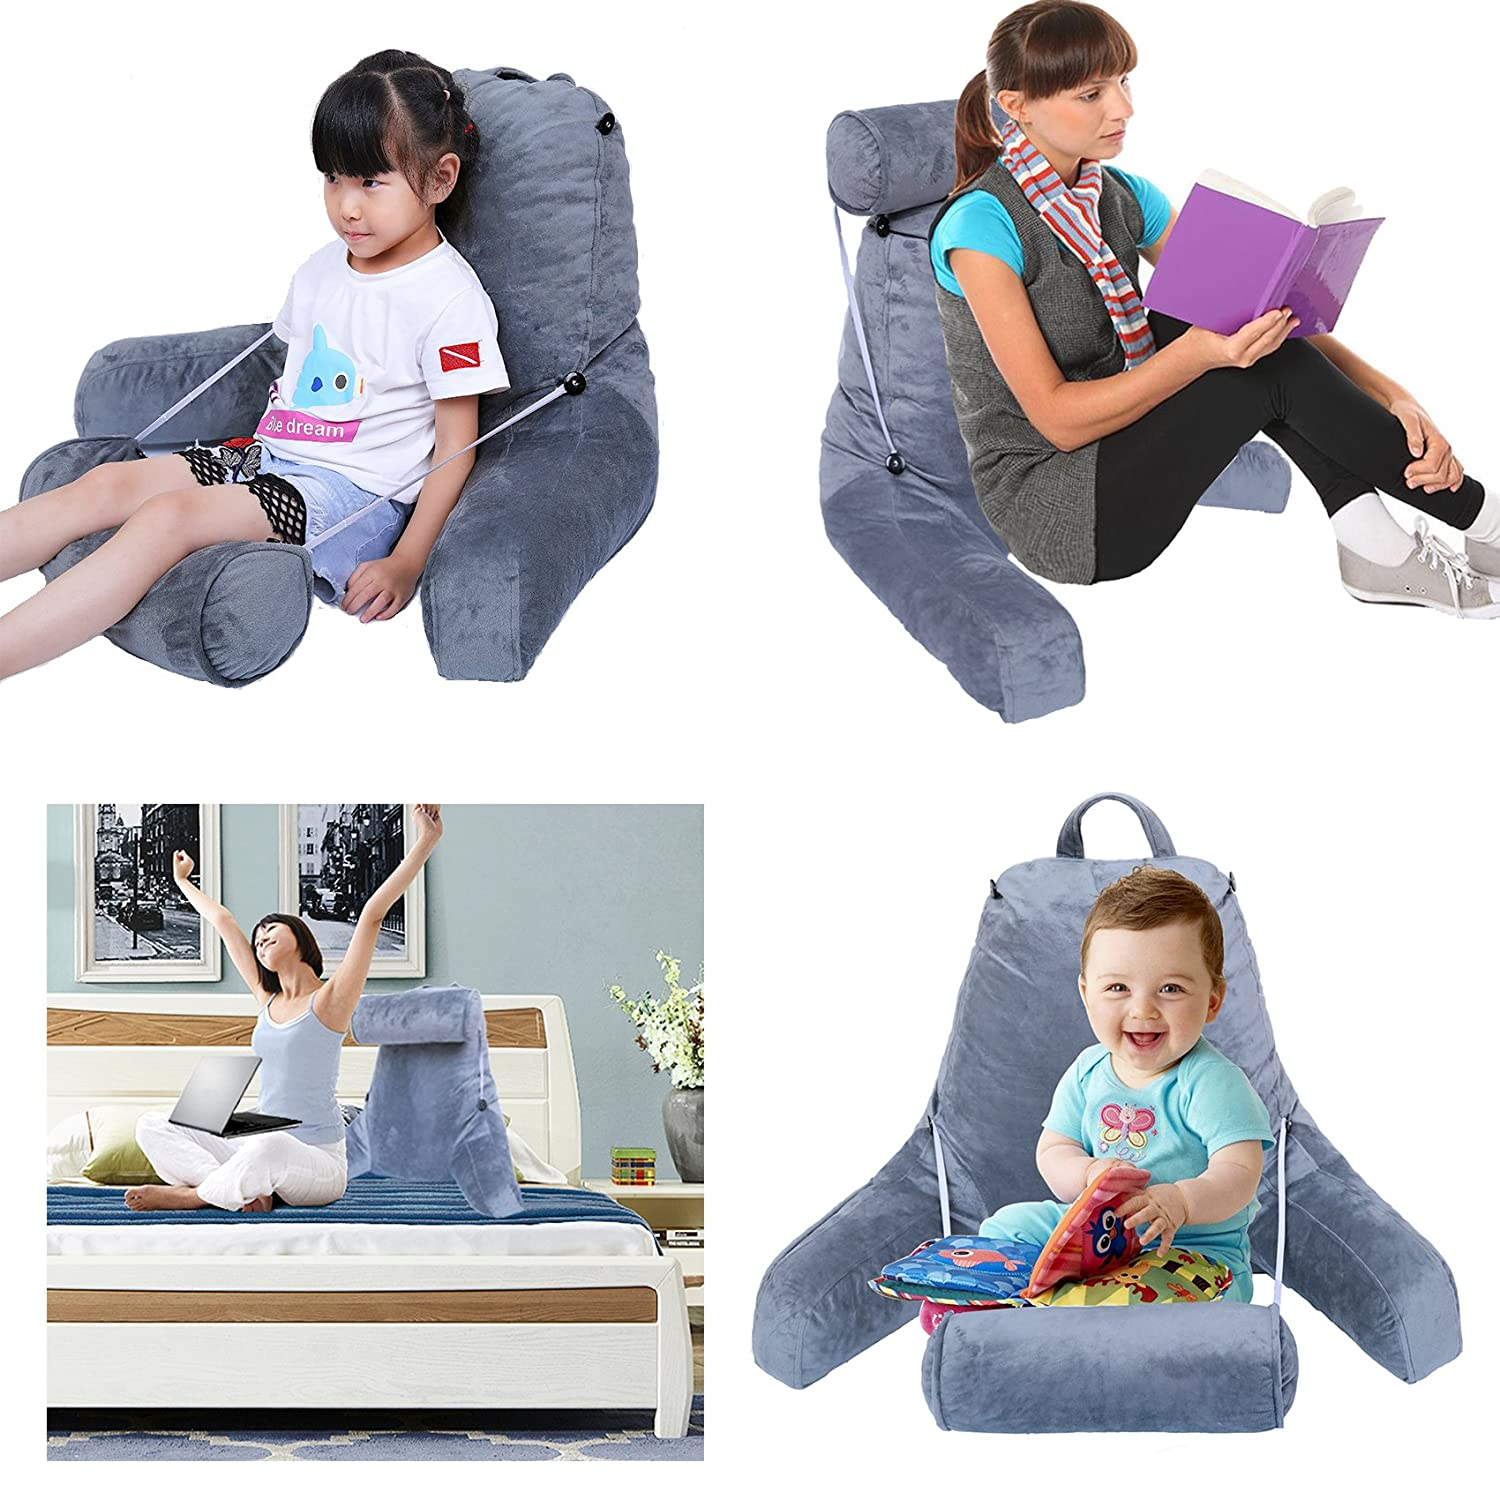 HZDY Large Backrest Reading and TV Pillow Advanced Memory Foam Blend Fill,Pregnant Women Cushions Lumbar Pad Detachable Neck Pillow,Removable Cleaning Grey Coat Great As Backrest for Books or Gaming